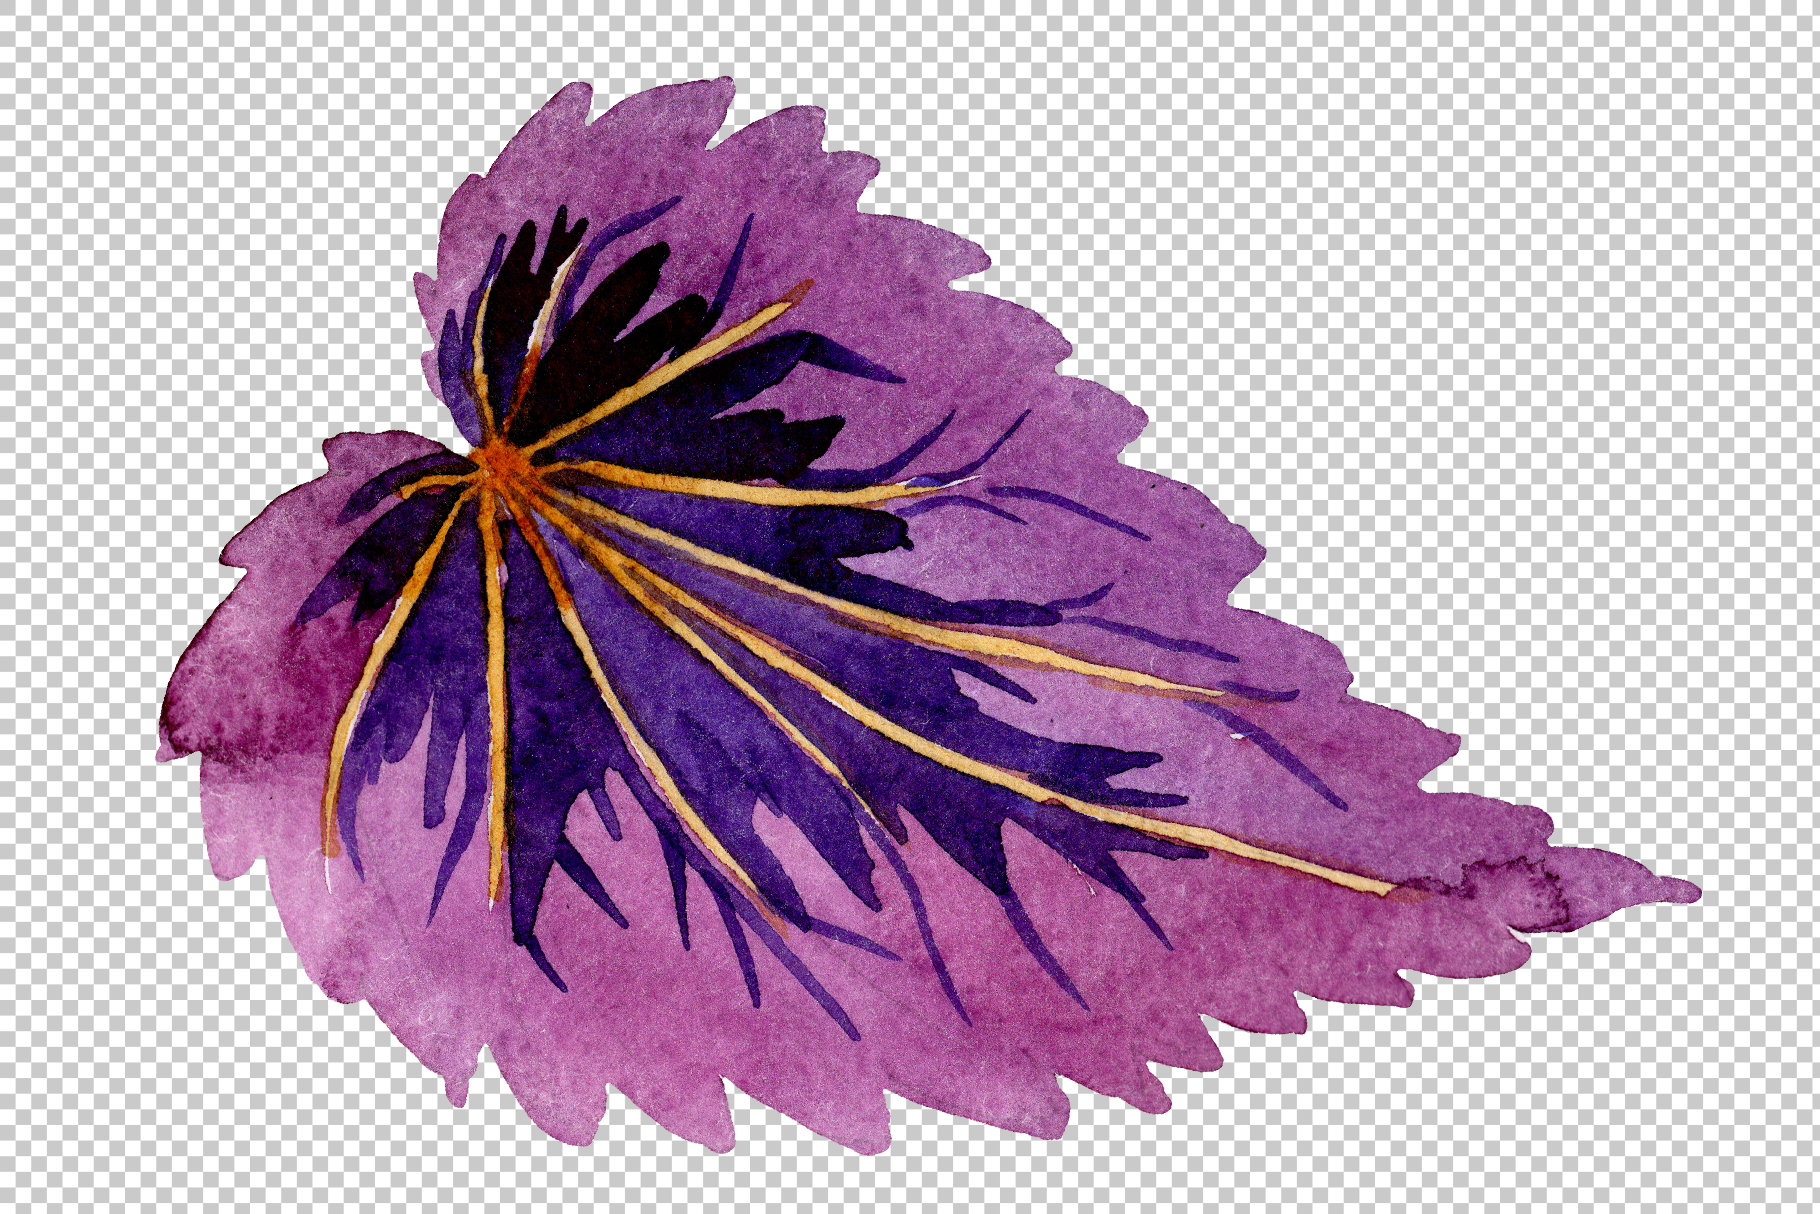 Begonia leaves Watercolor png example image 2